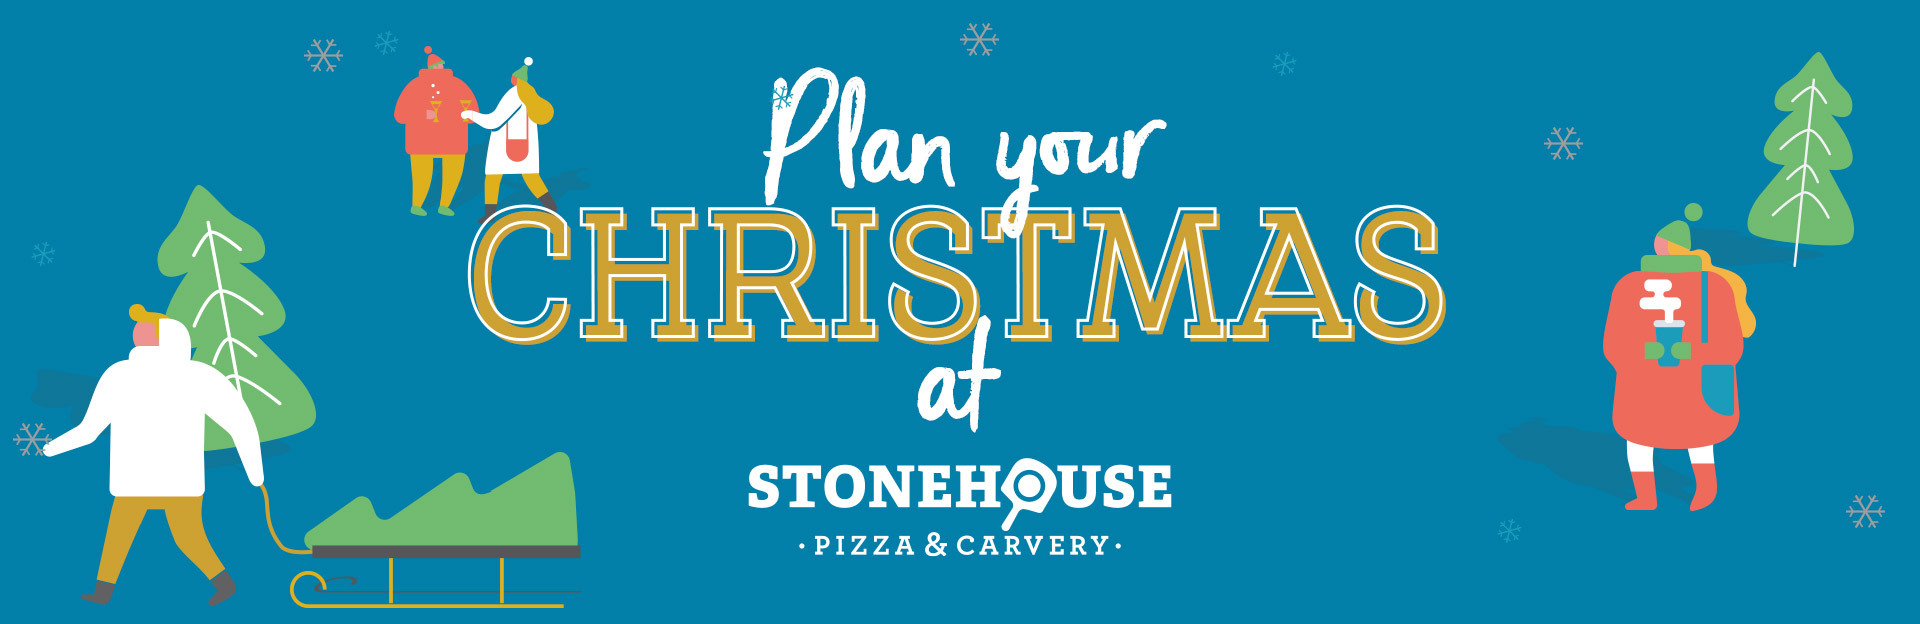 Stonehouse Christmas Day menu